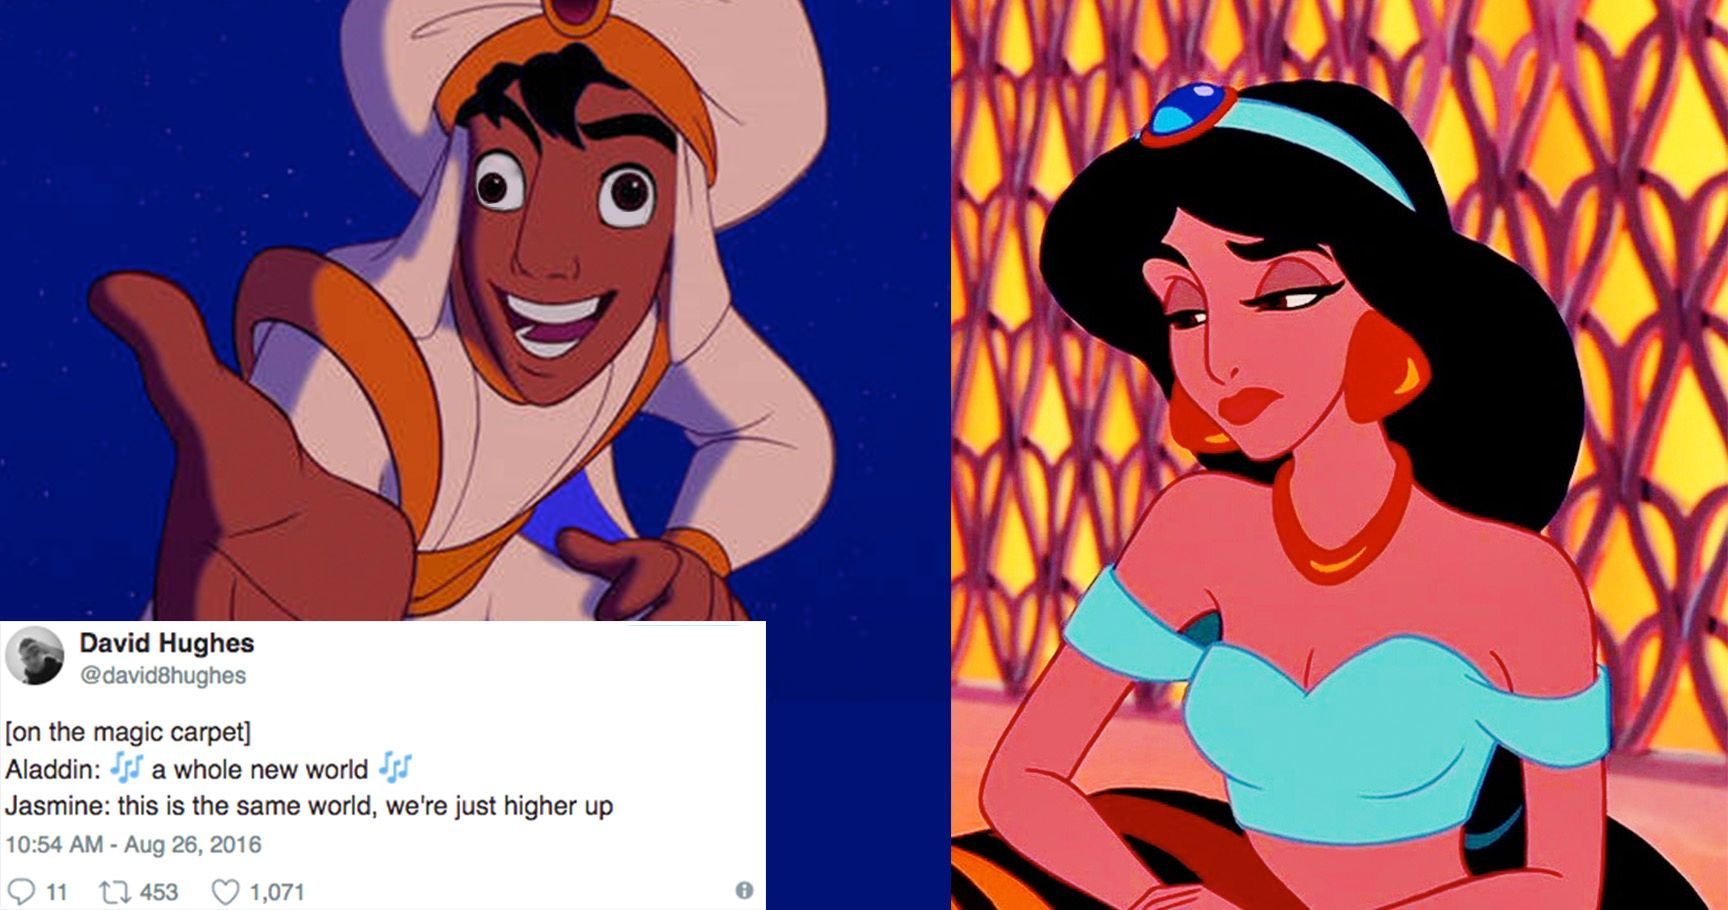 15 Hysterical Disney Tweets That Have Us Gasping For Air